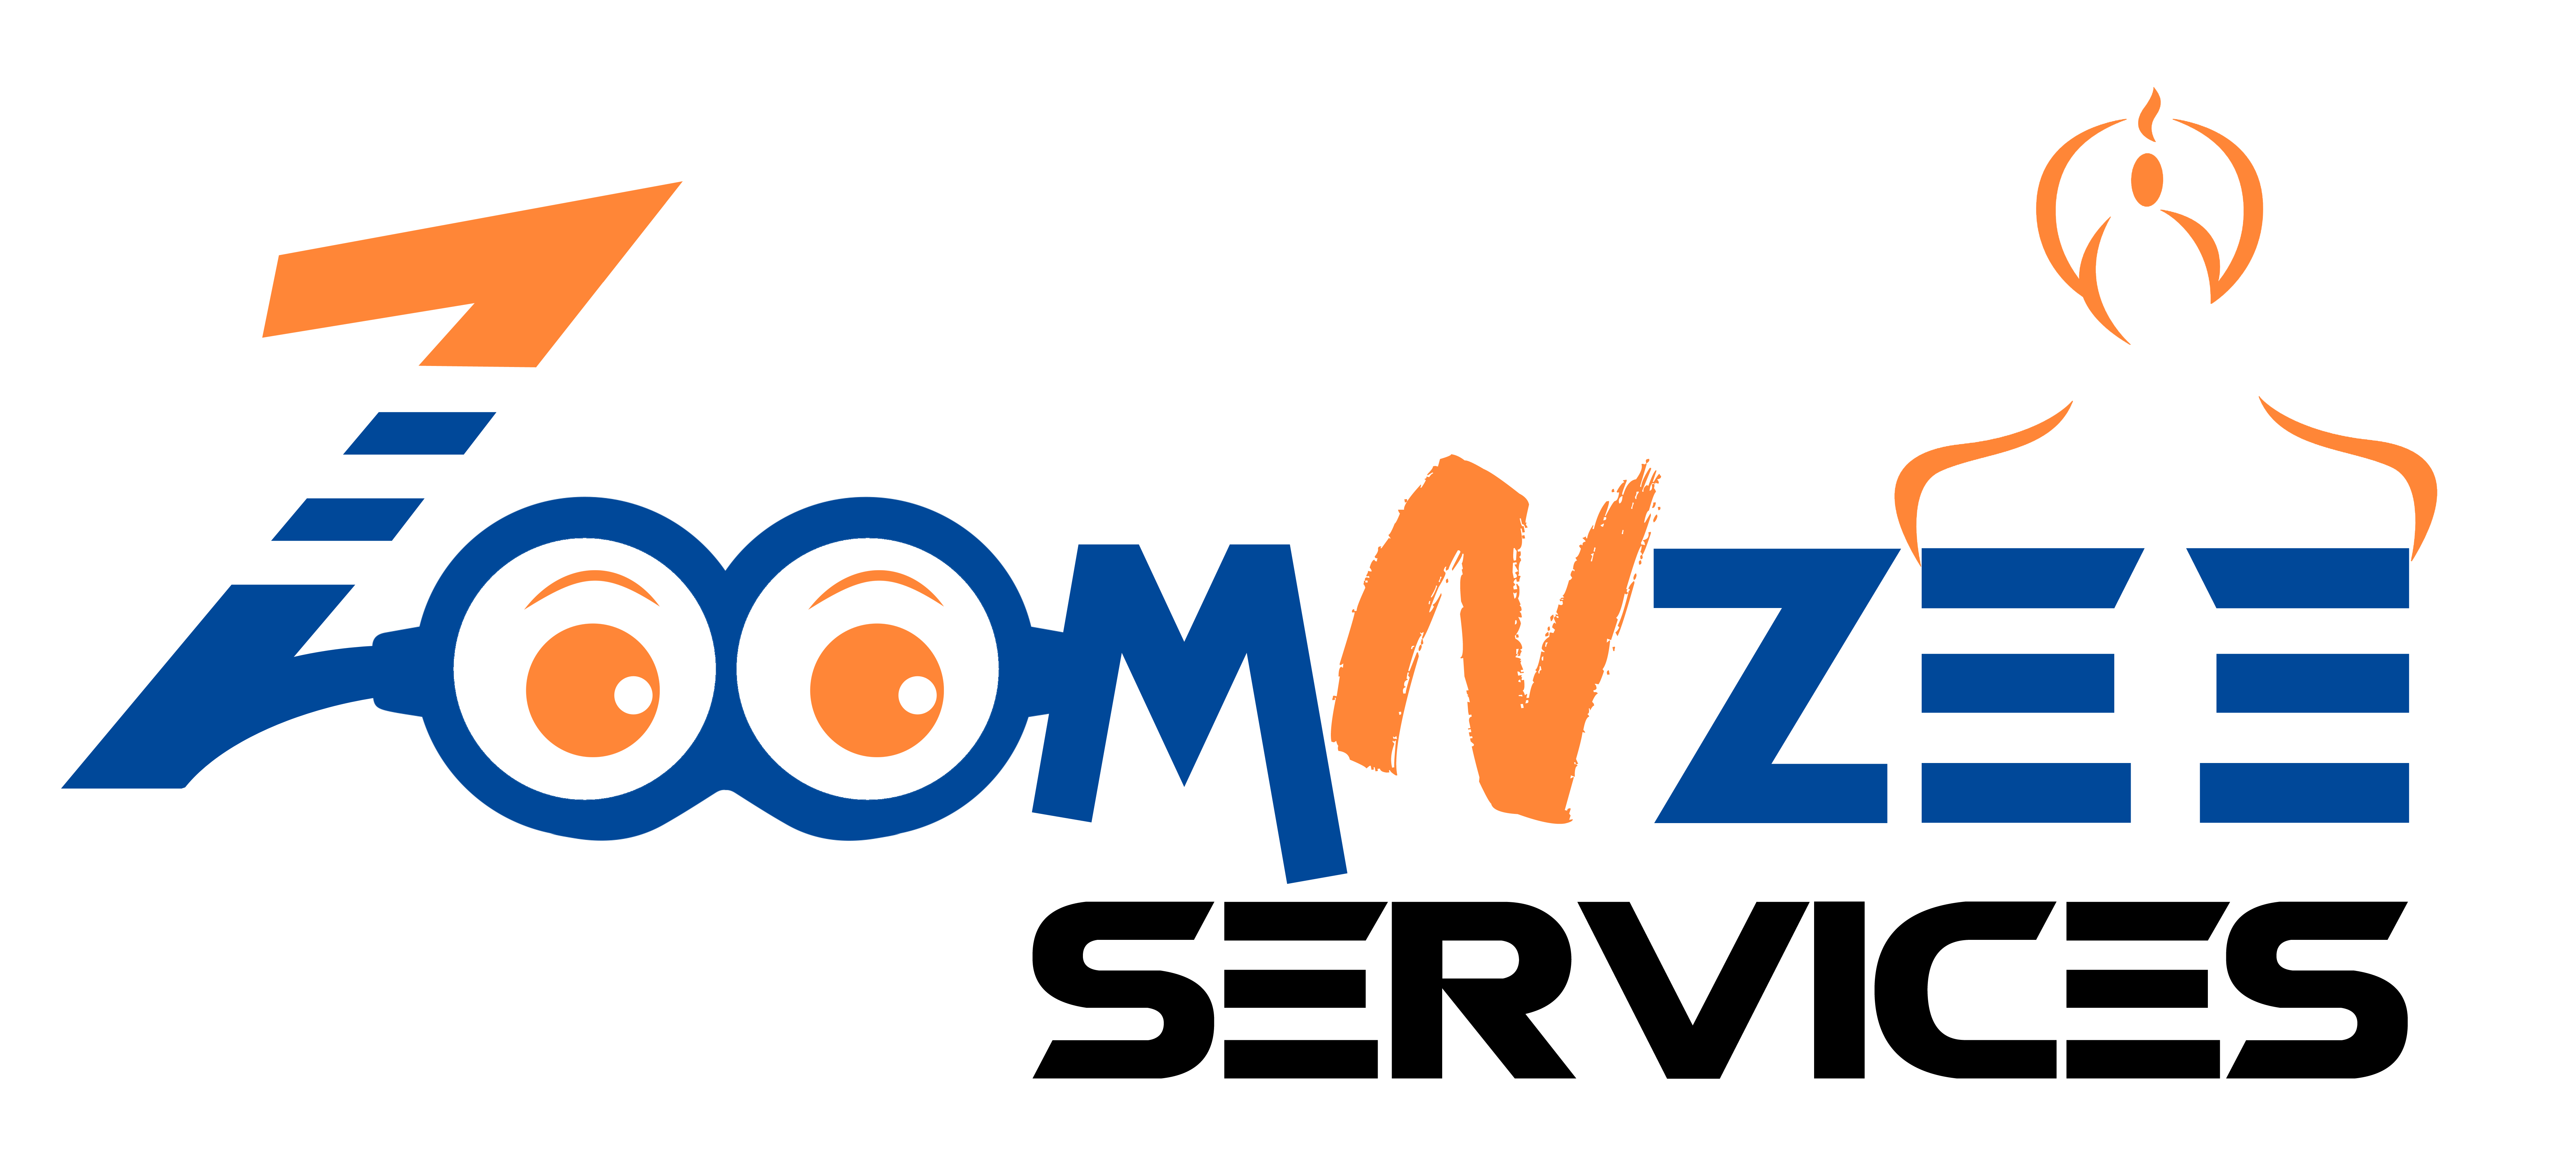 ZOOMNZEE Services